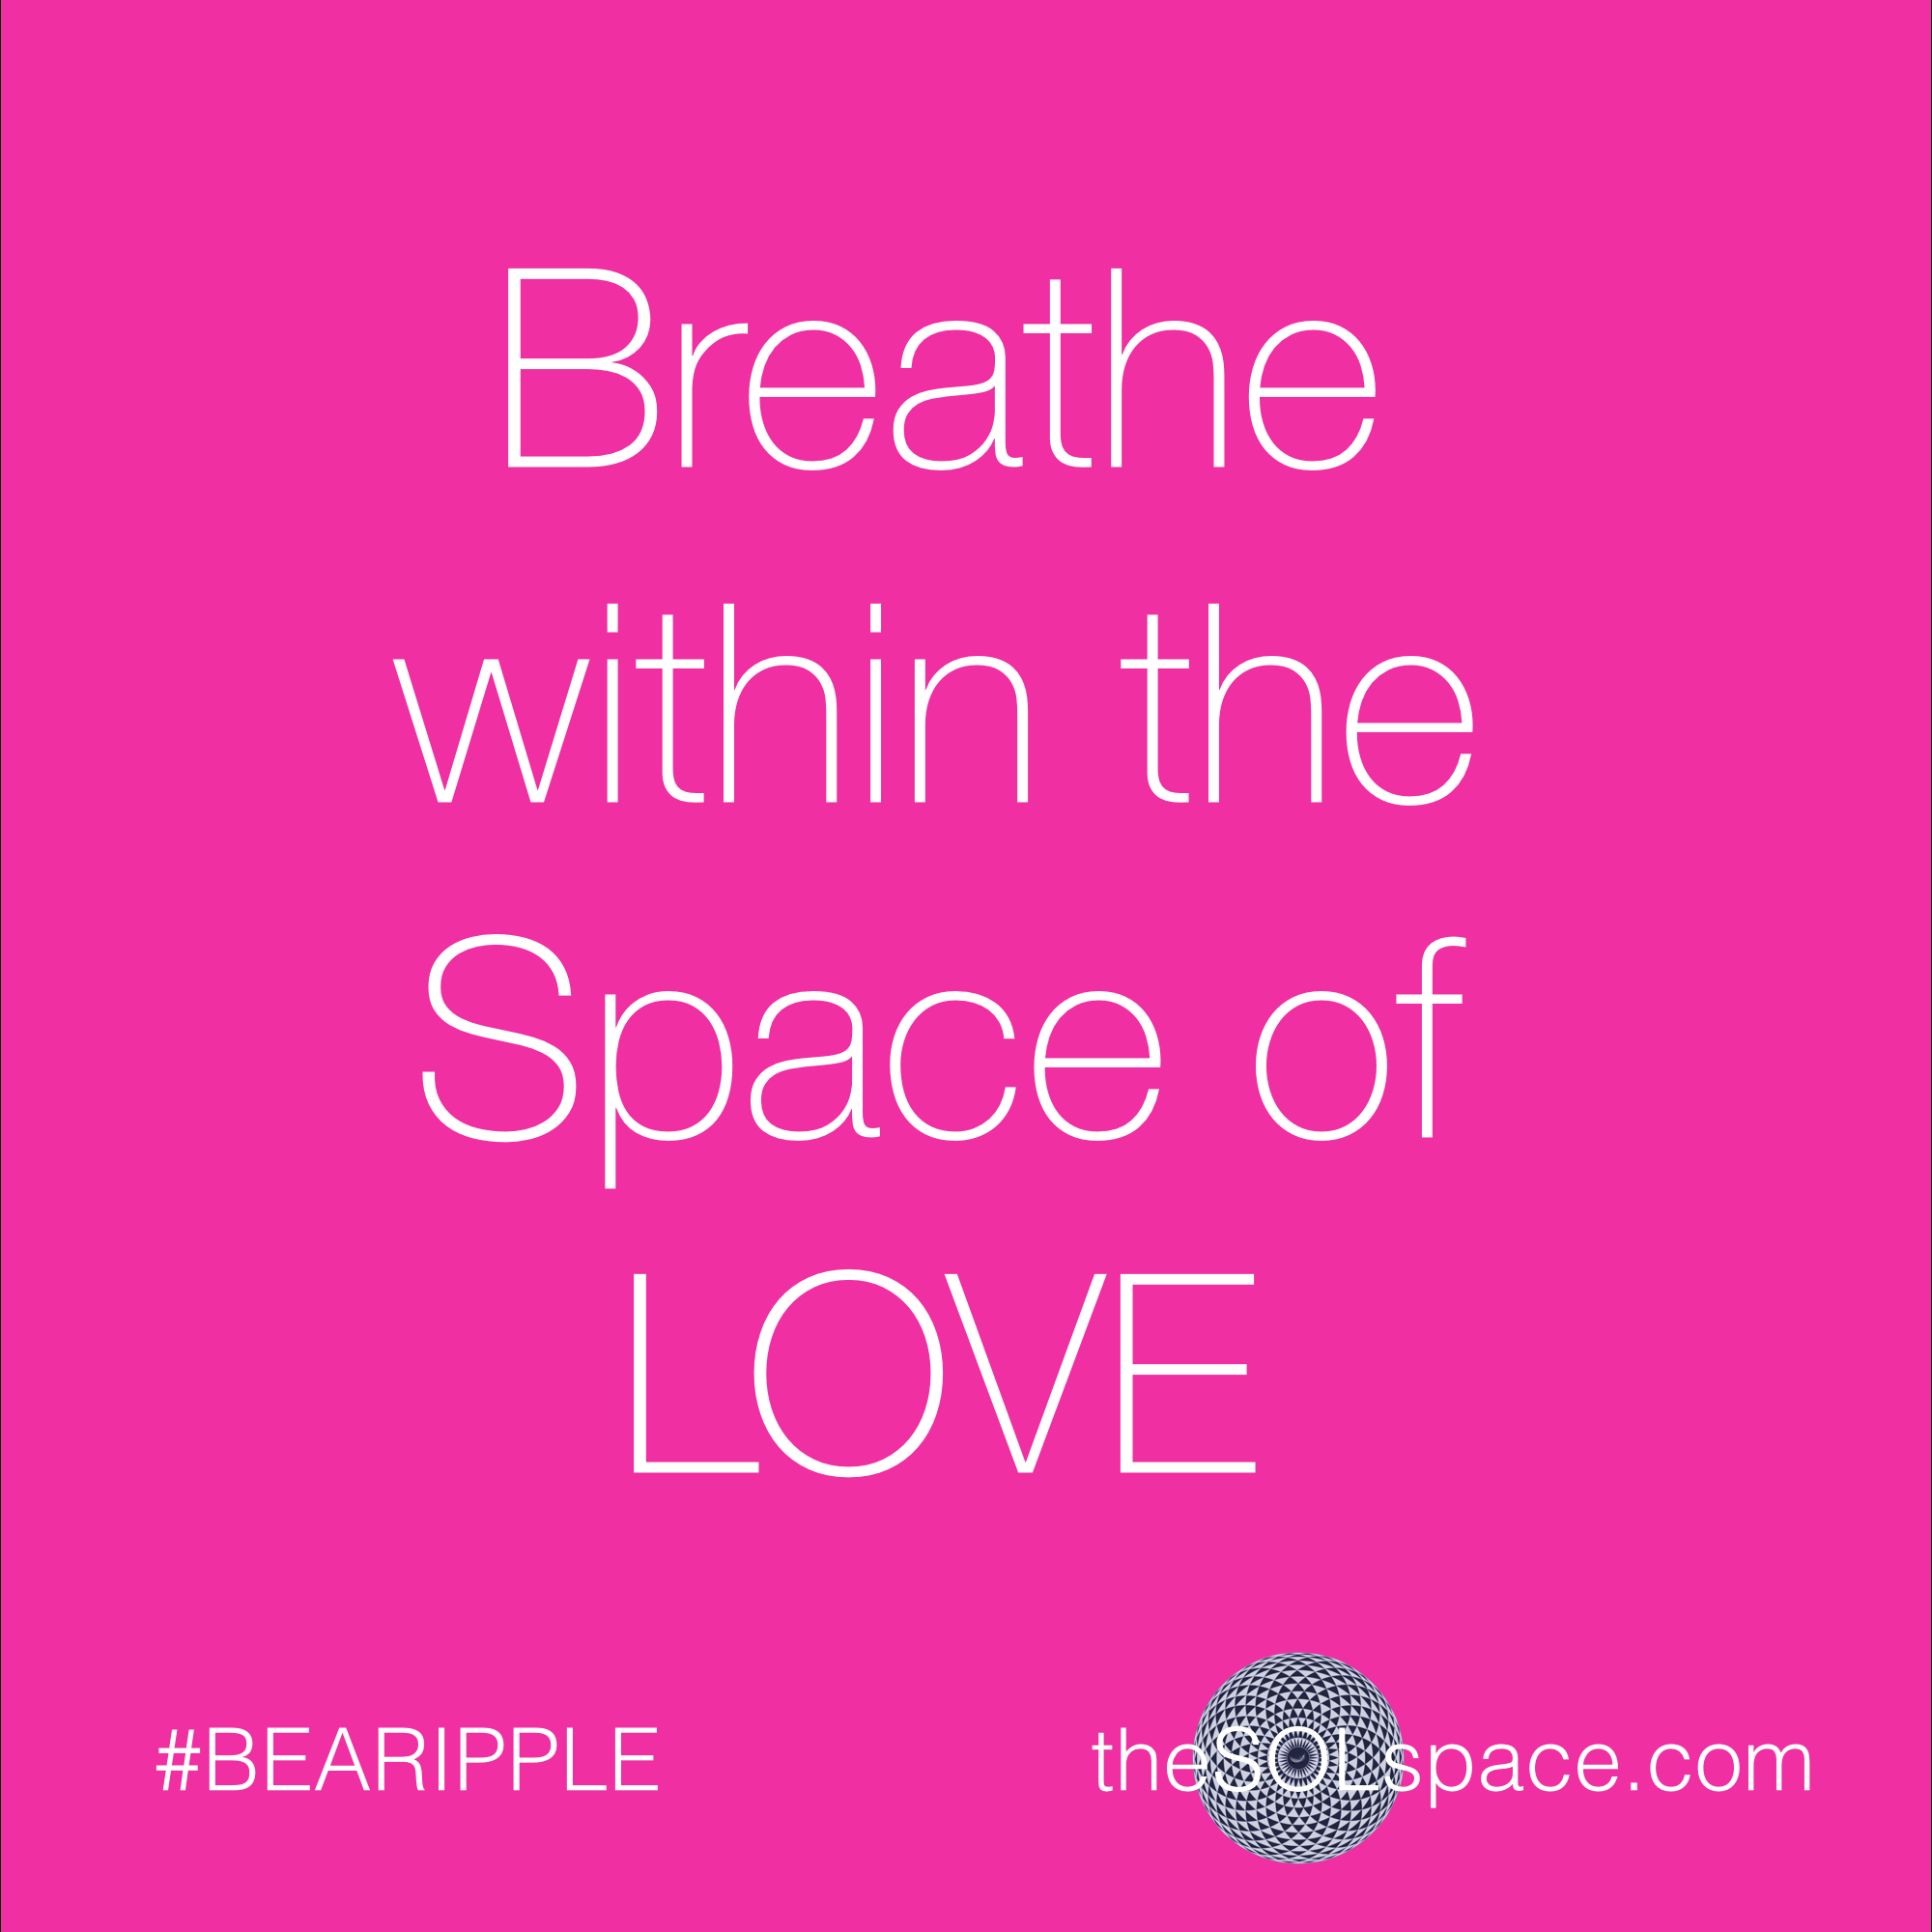 #BeARipple..Breathe within the space of love @theSOLspace